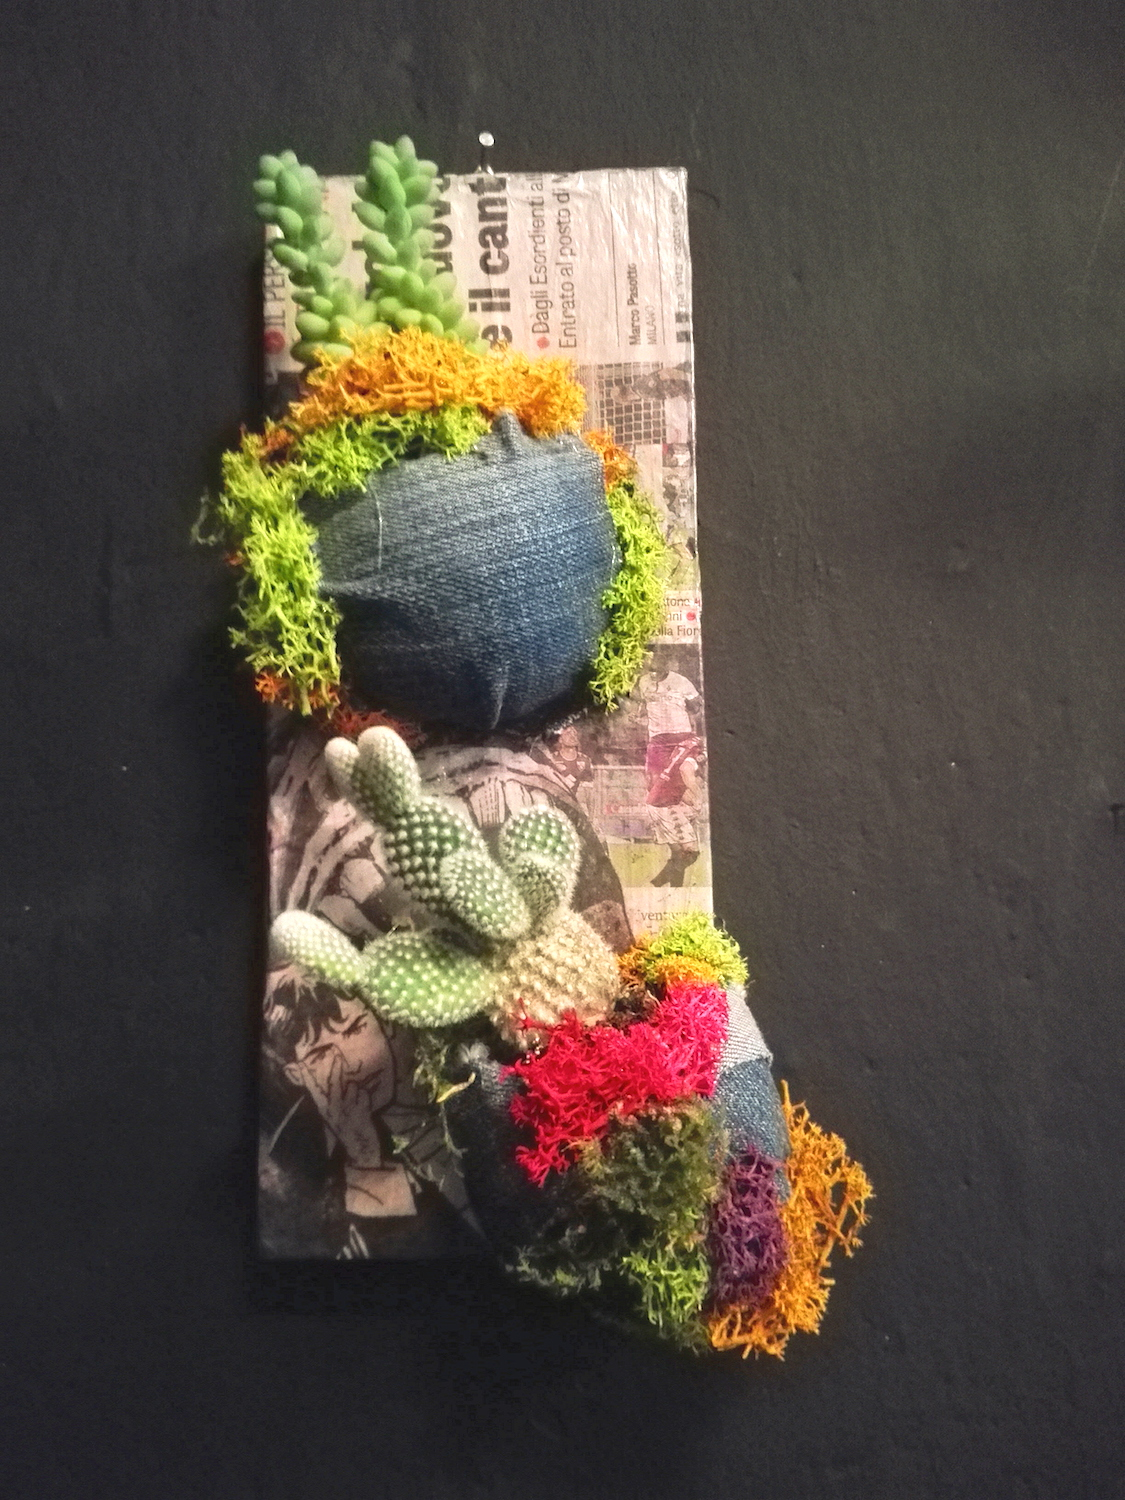 - Materials: wood recycled, pink paper sheet, mini succulents pottedd, colored preserved  mosses, jeans, dry foam Oasis half spheres  - Dimension: 8x20 cm  - Maintenance: watering the pot plants once a week during the warm seasons and once a month during the cold ones